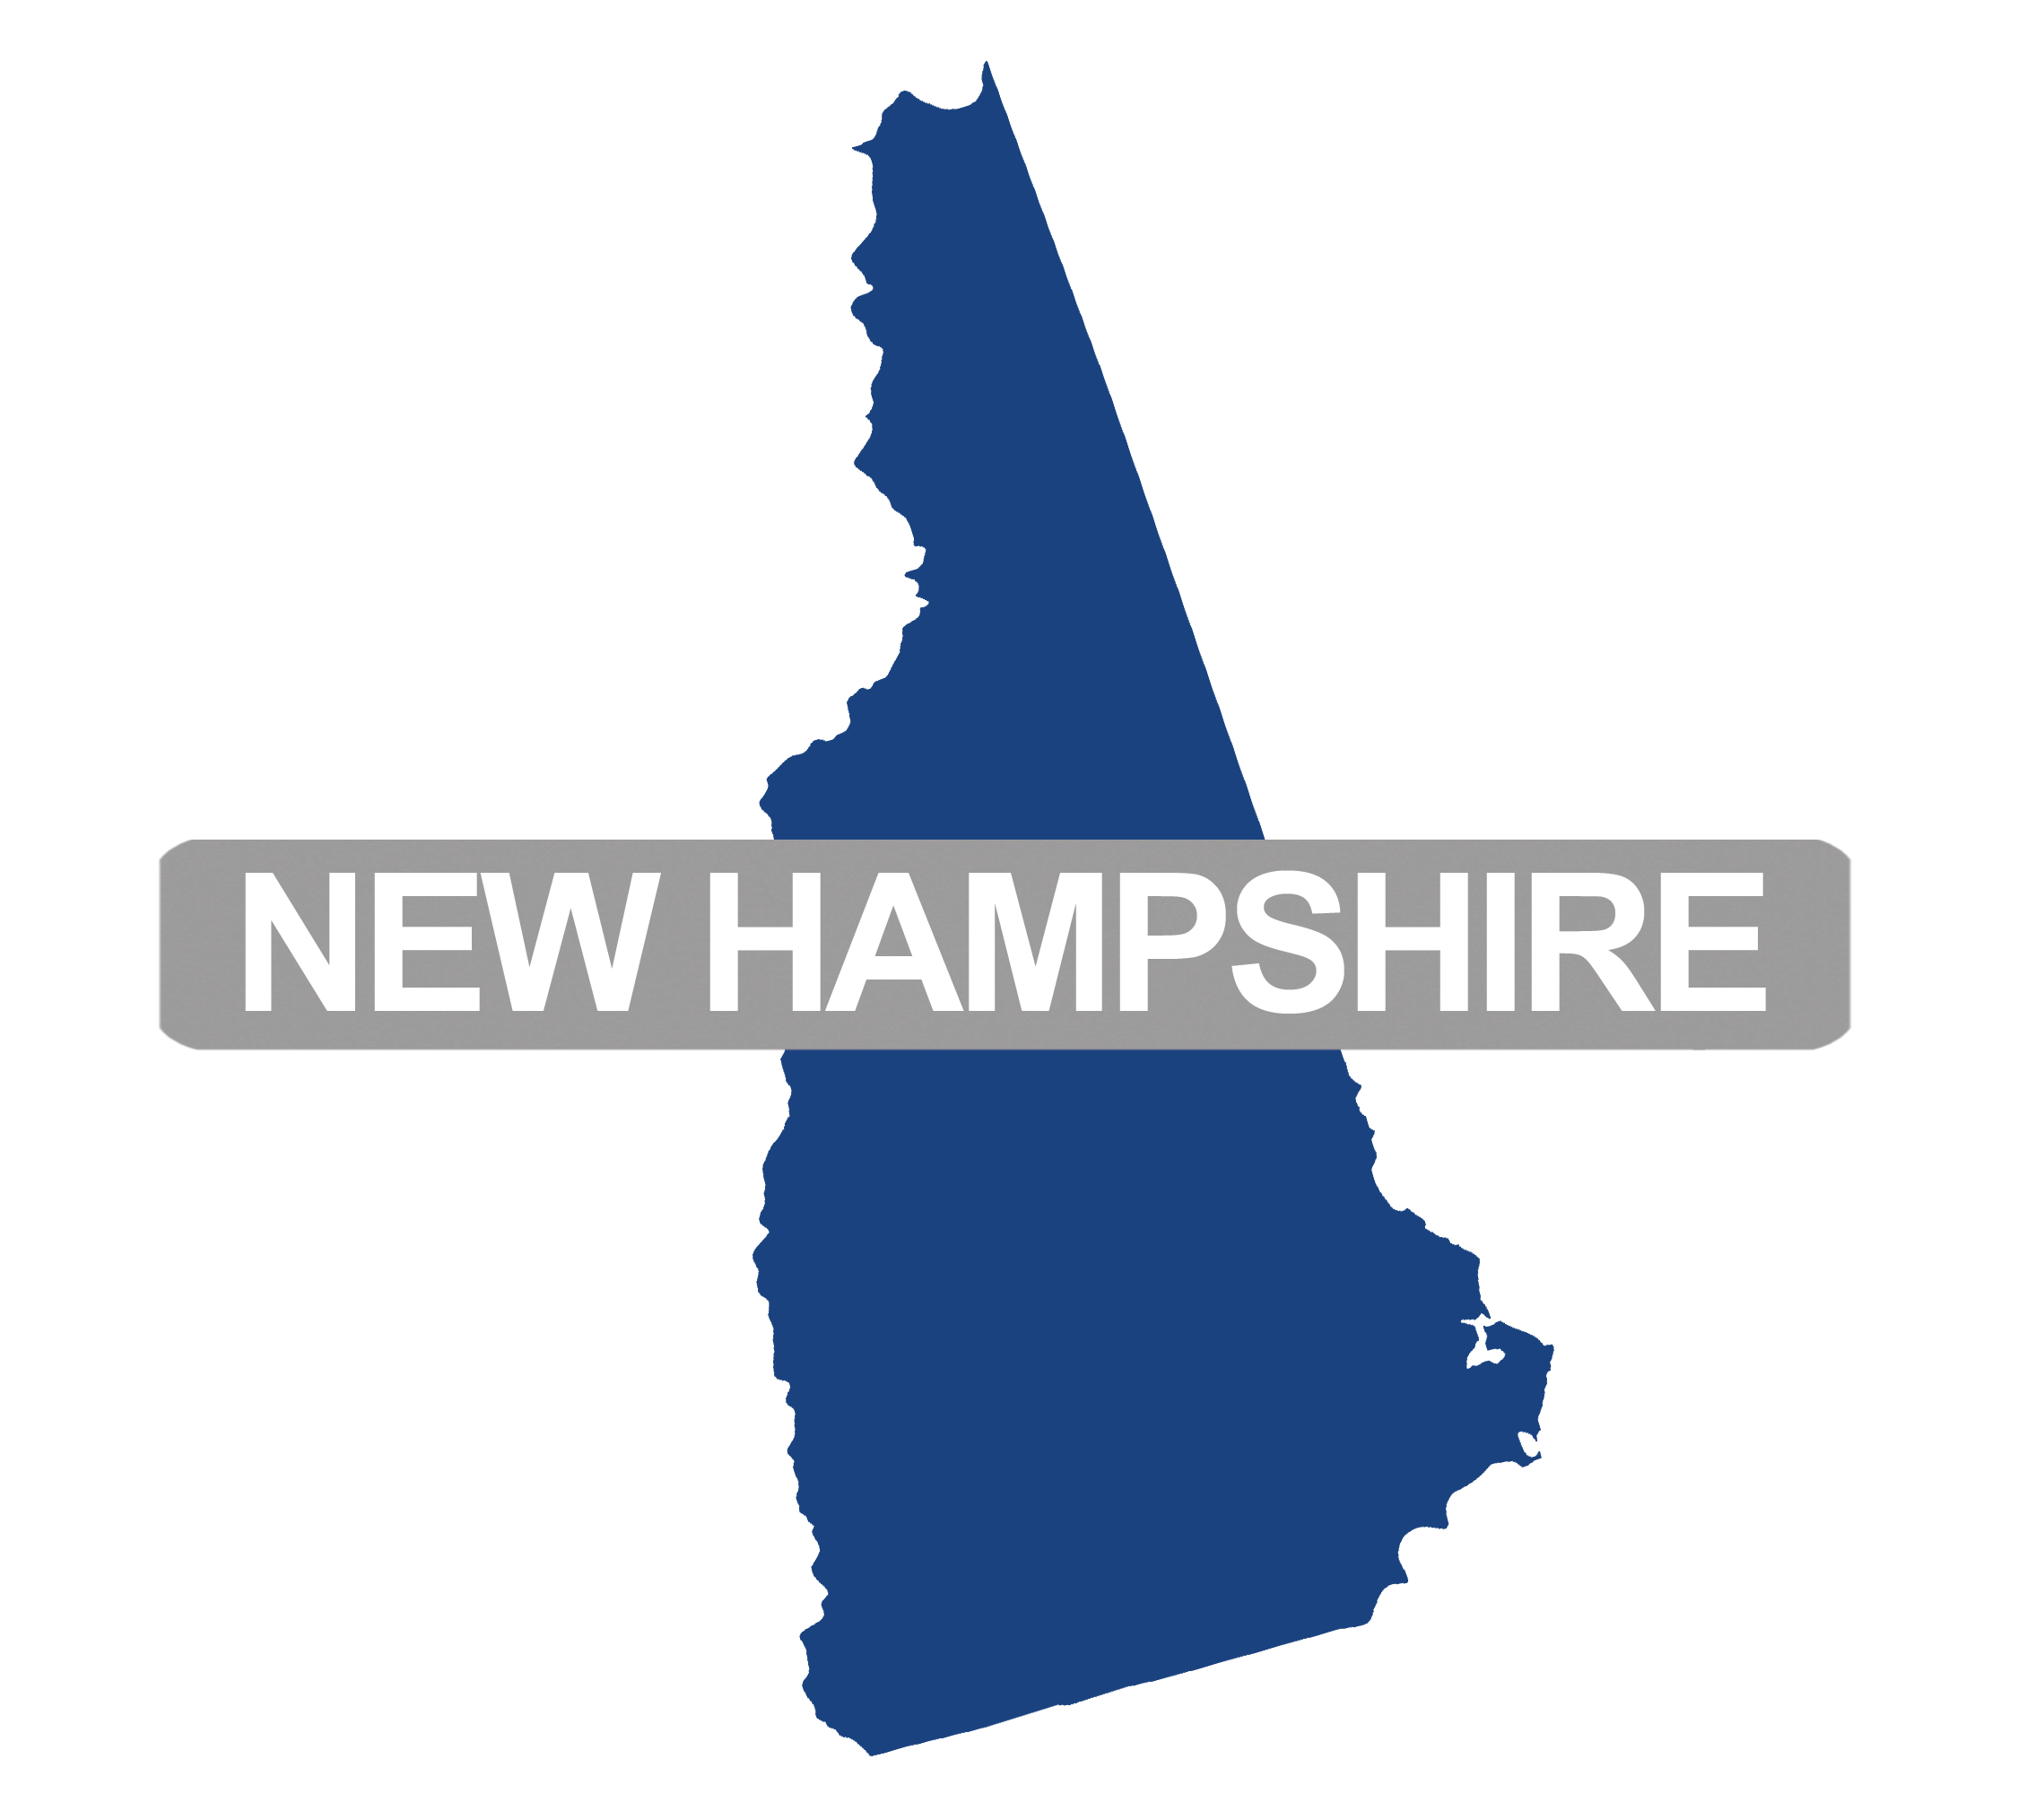 New Hampshire    New Hampshire Help Line: 1-800-852-3388    View Point Teens Line: 855-290-9682    Riverbend Community Mental Health: 1-800-852-3323